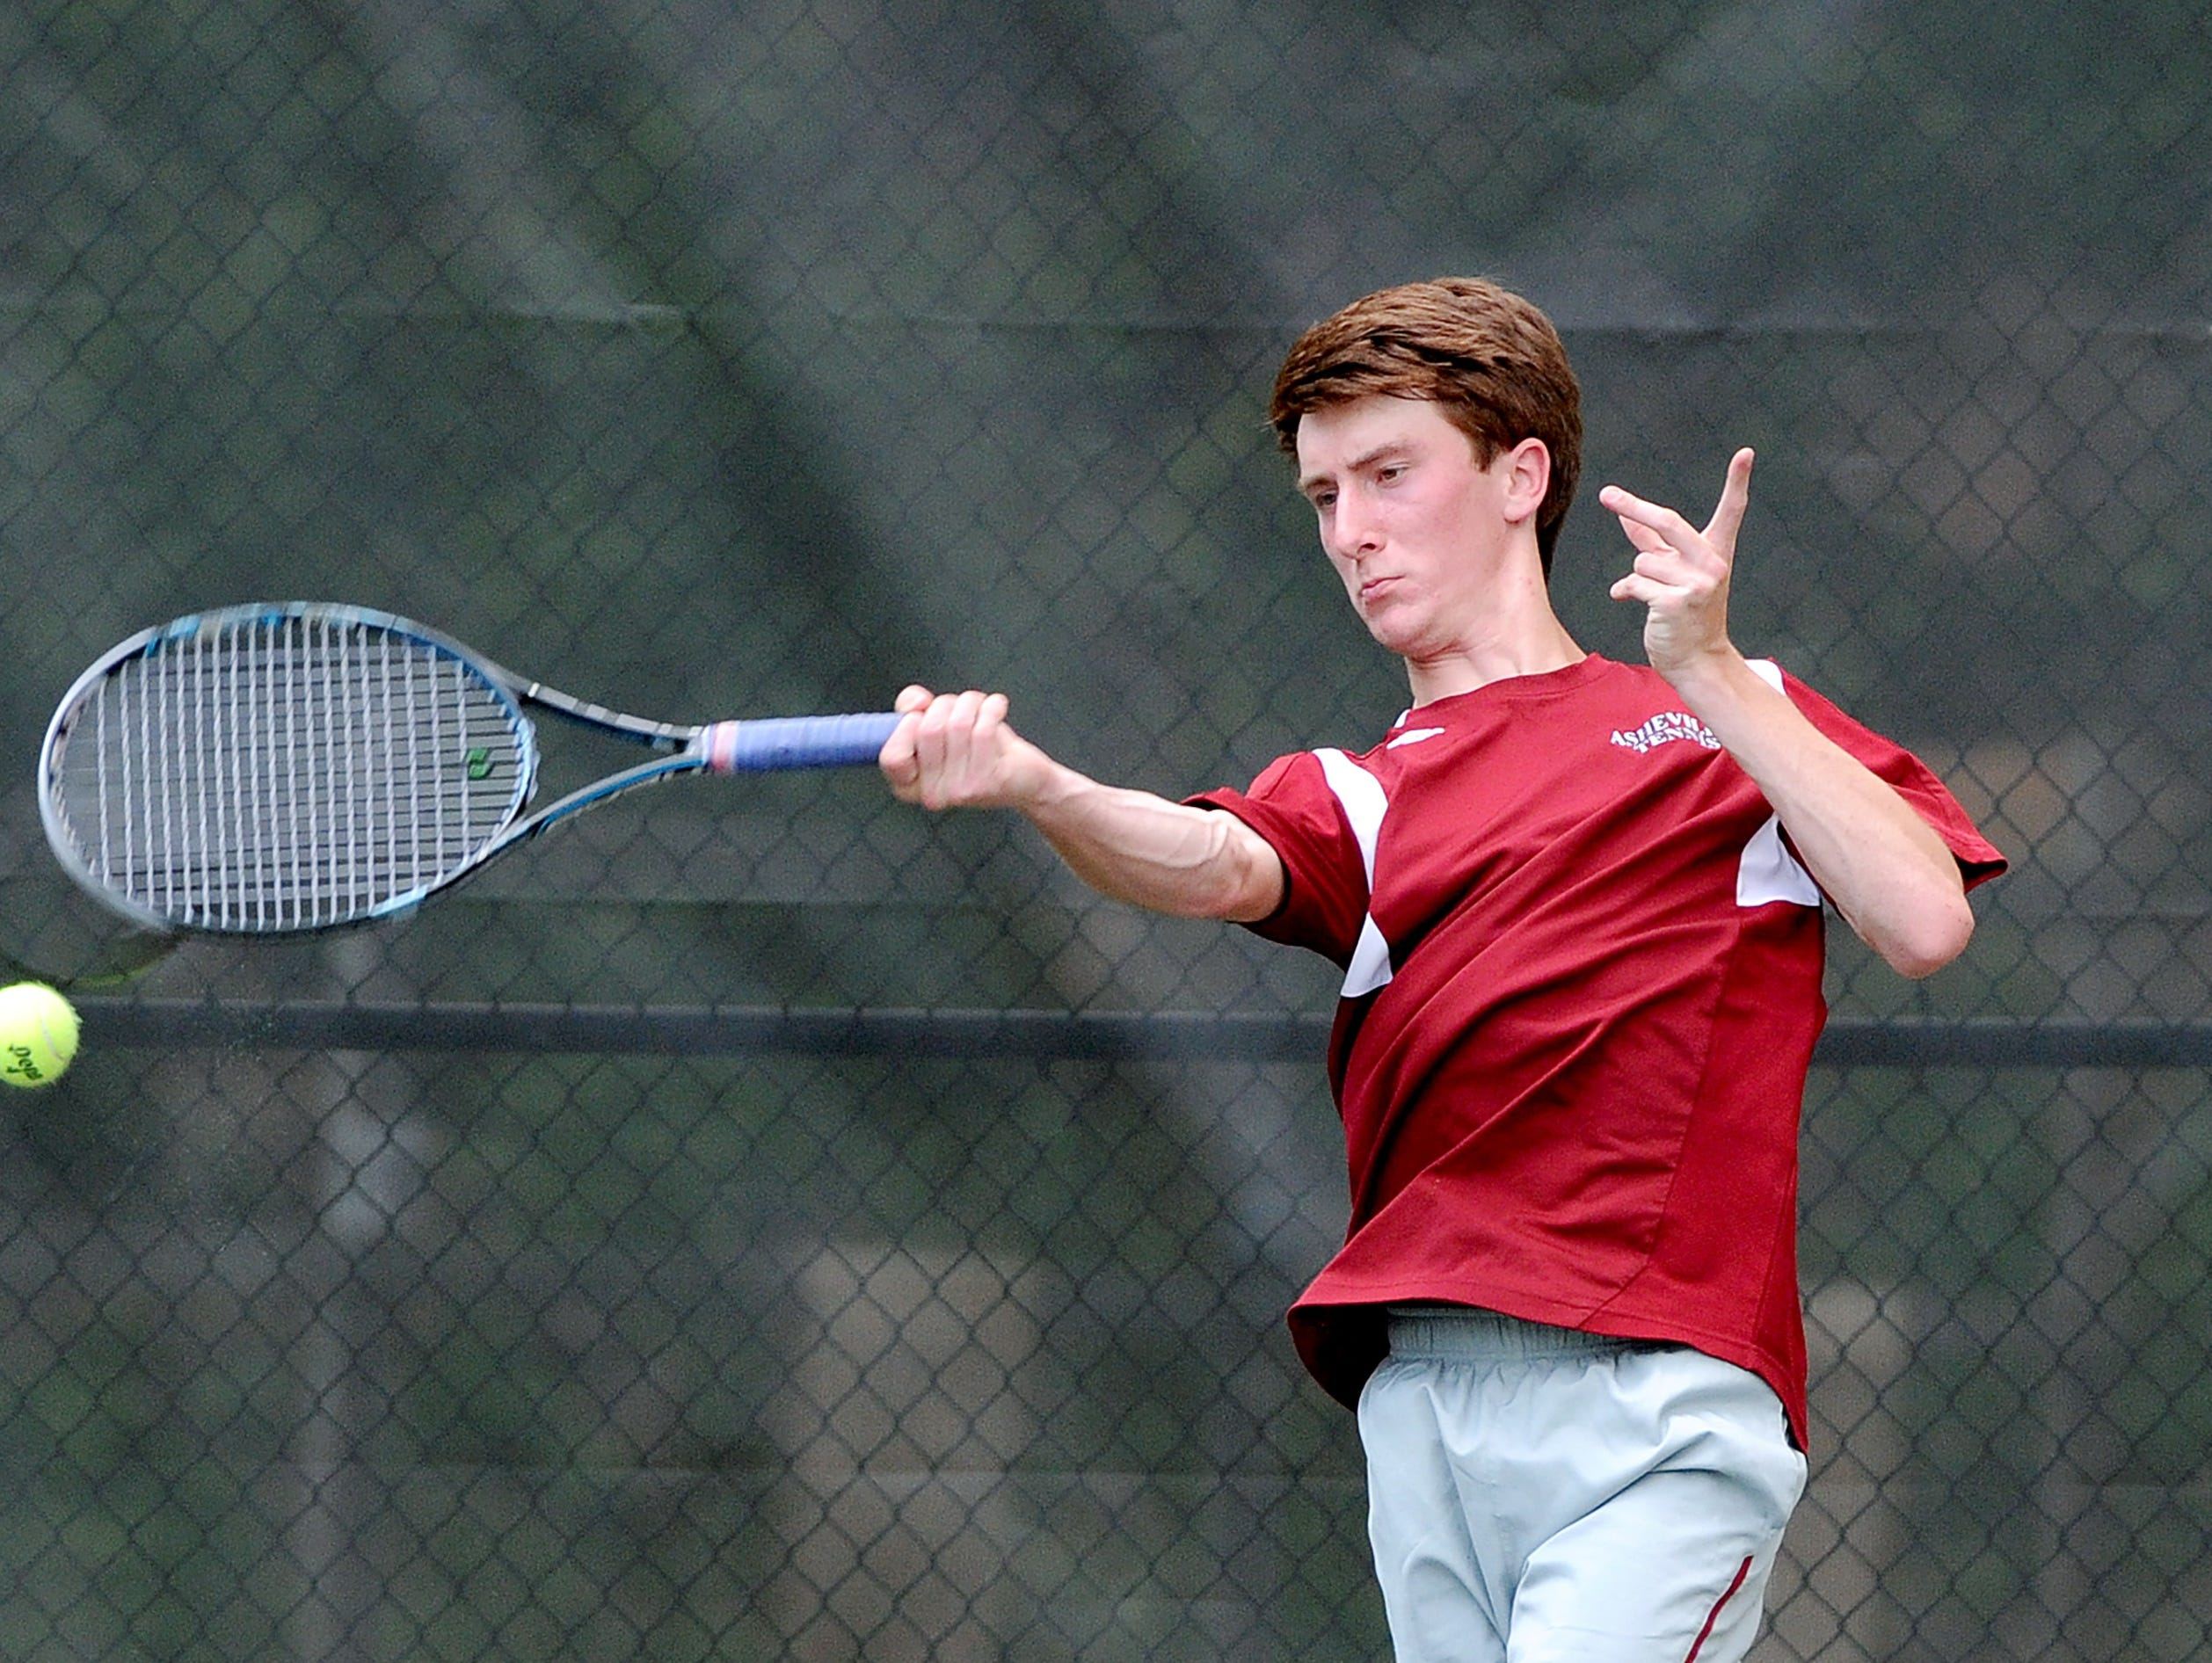 Asheville High rising sophomore Ryan Roegner was named to the Citizen-Times All-WNC Boys Tennis team last month.